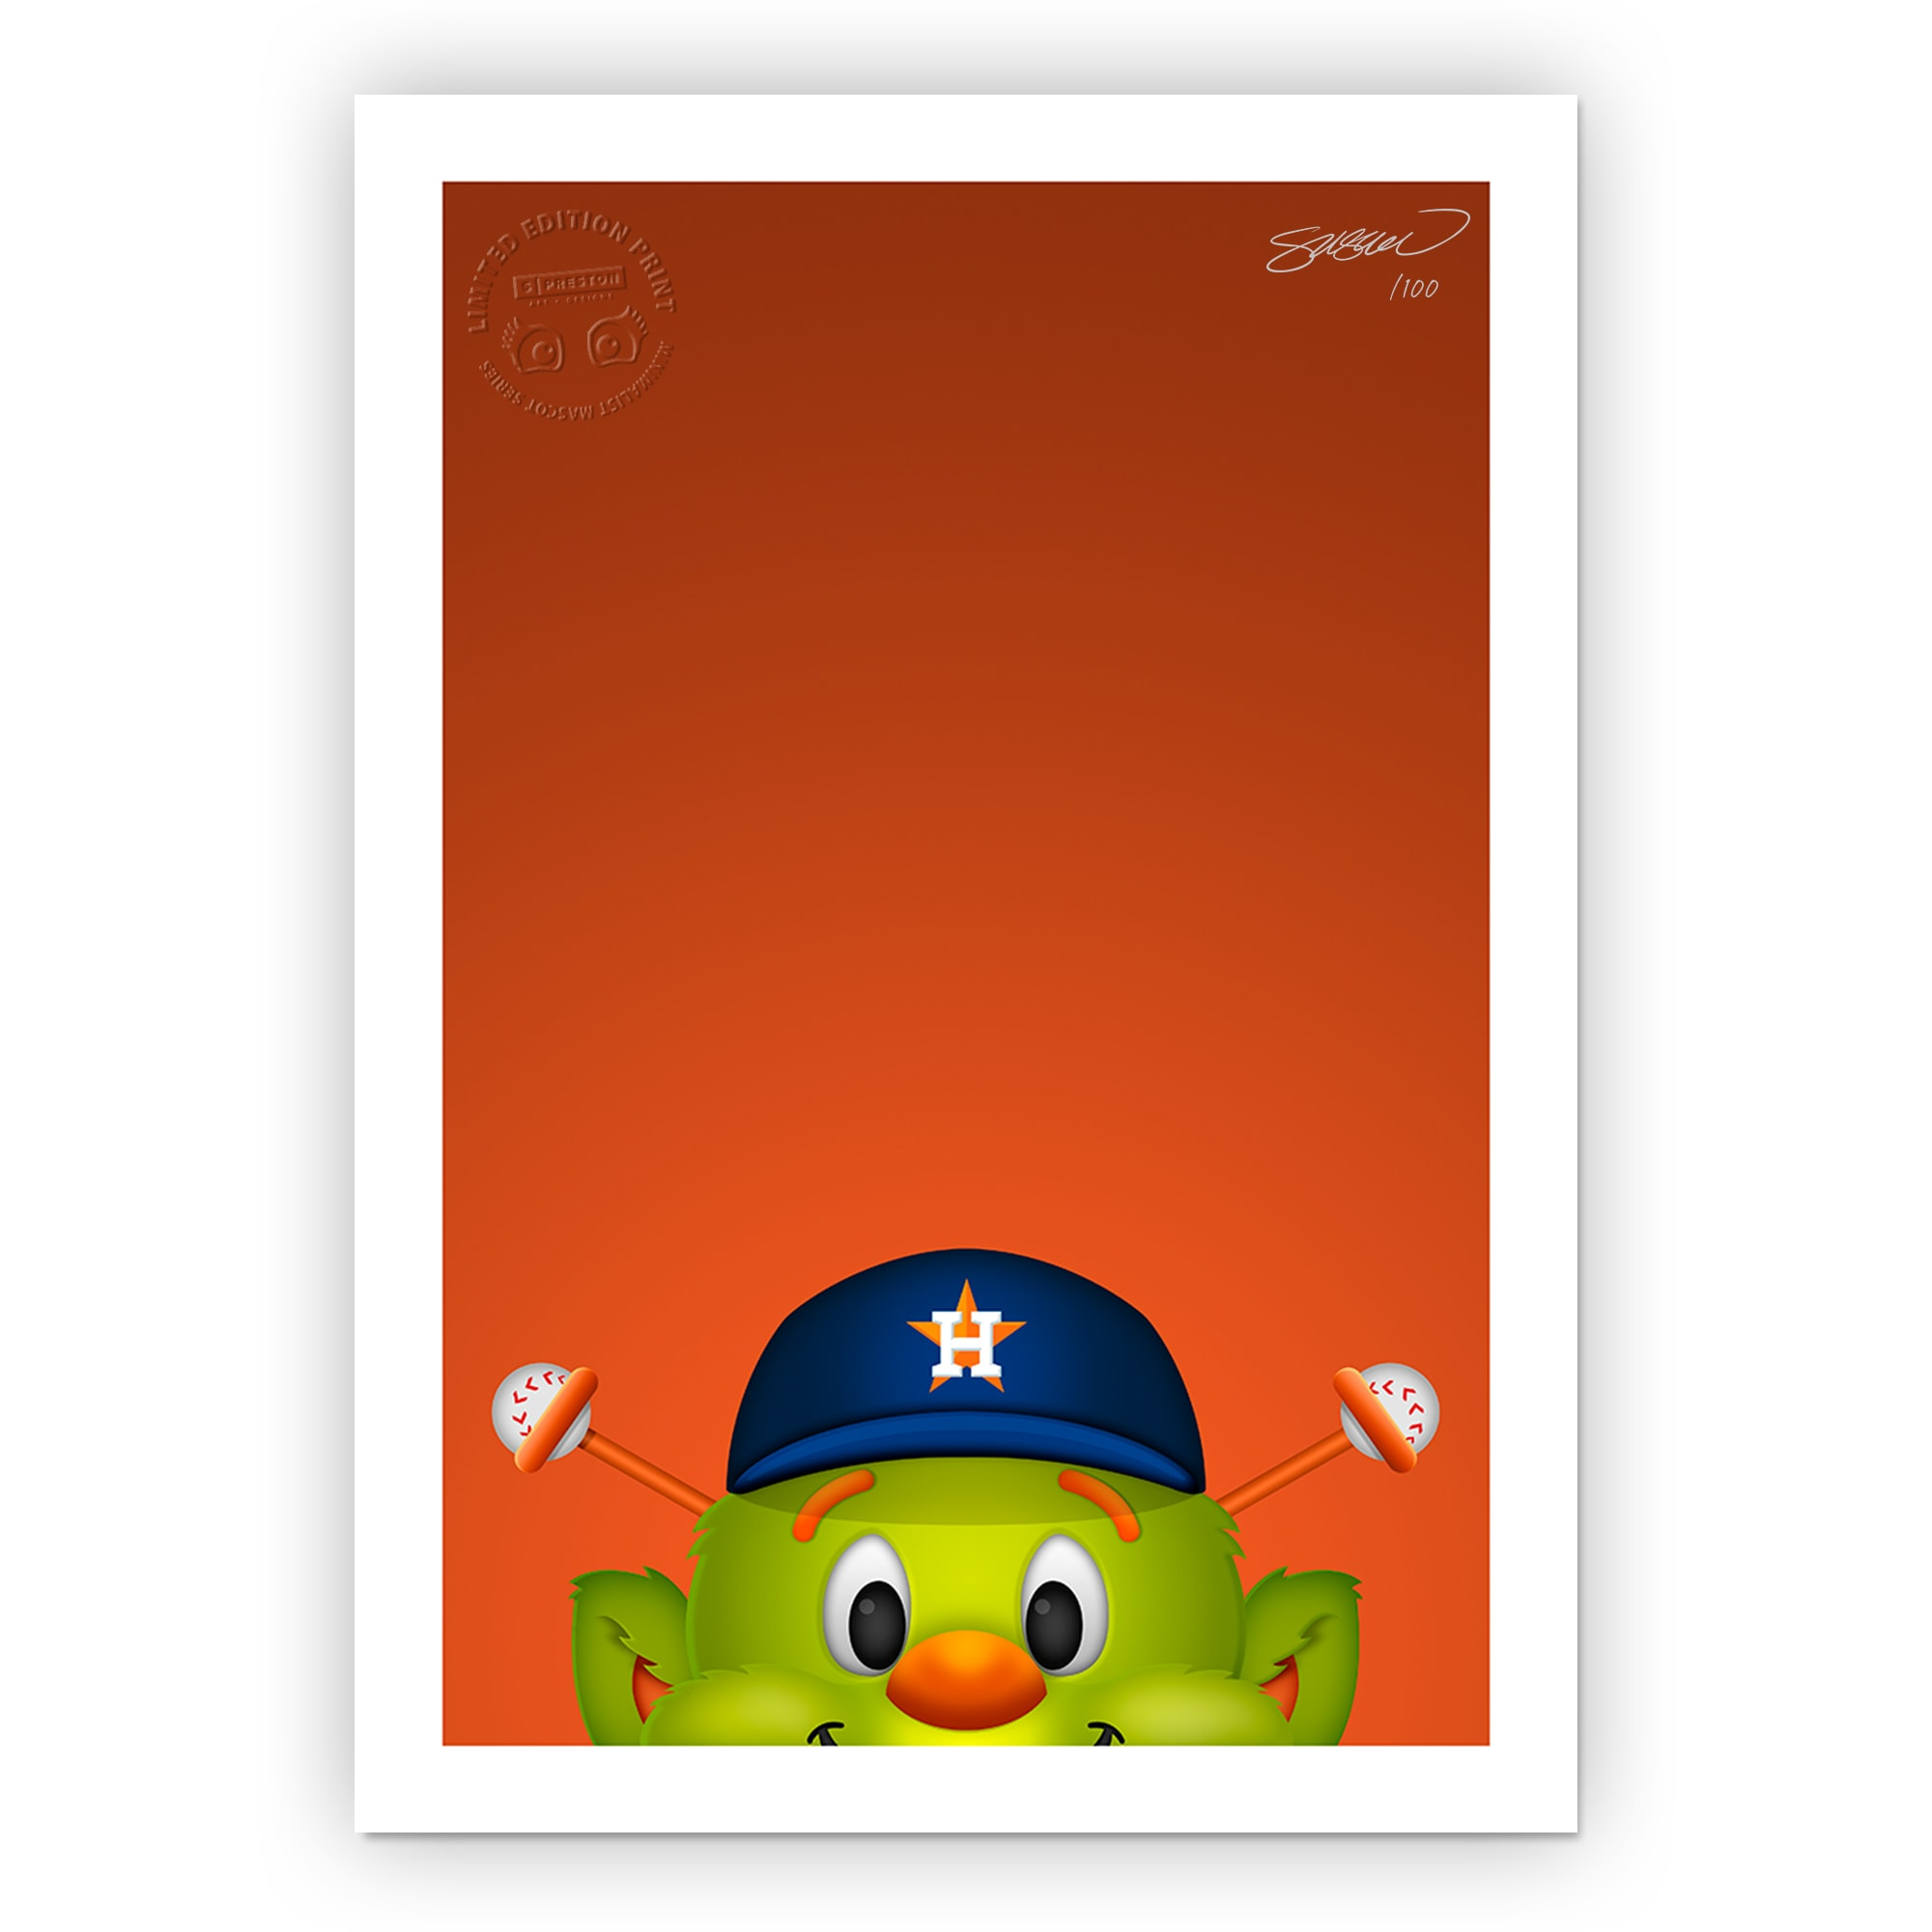 "Houston Astros 24"" x 32"" Minimalist Houston Astros Mascot Wall Art"